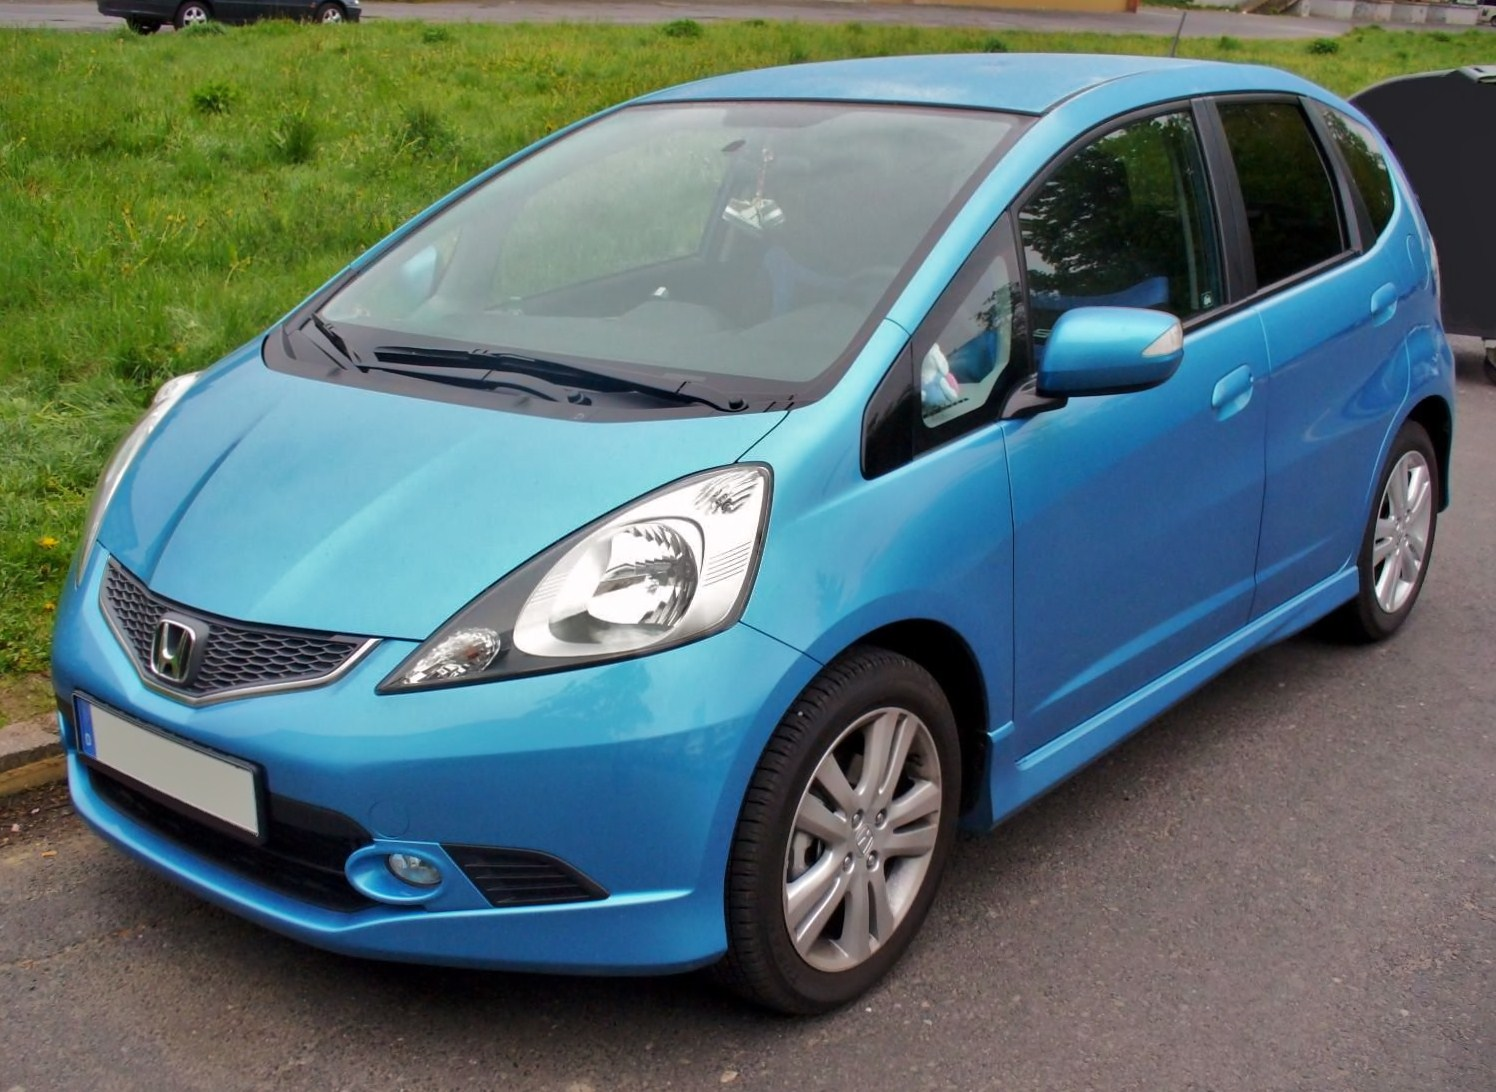 HONDA JAZZ blue